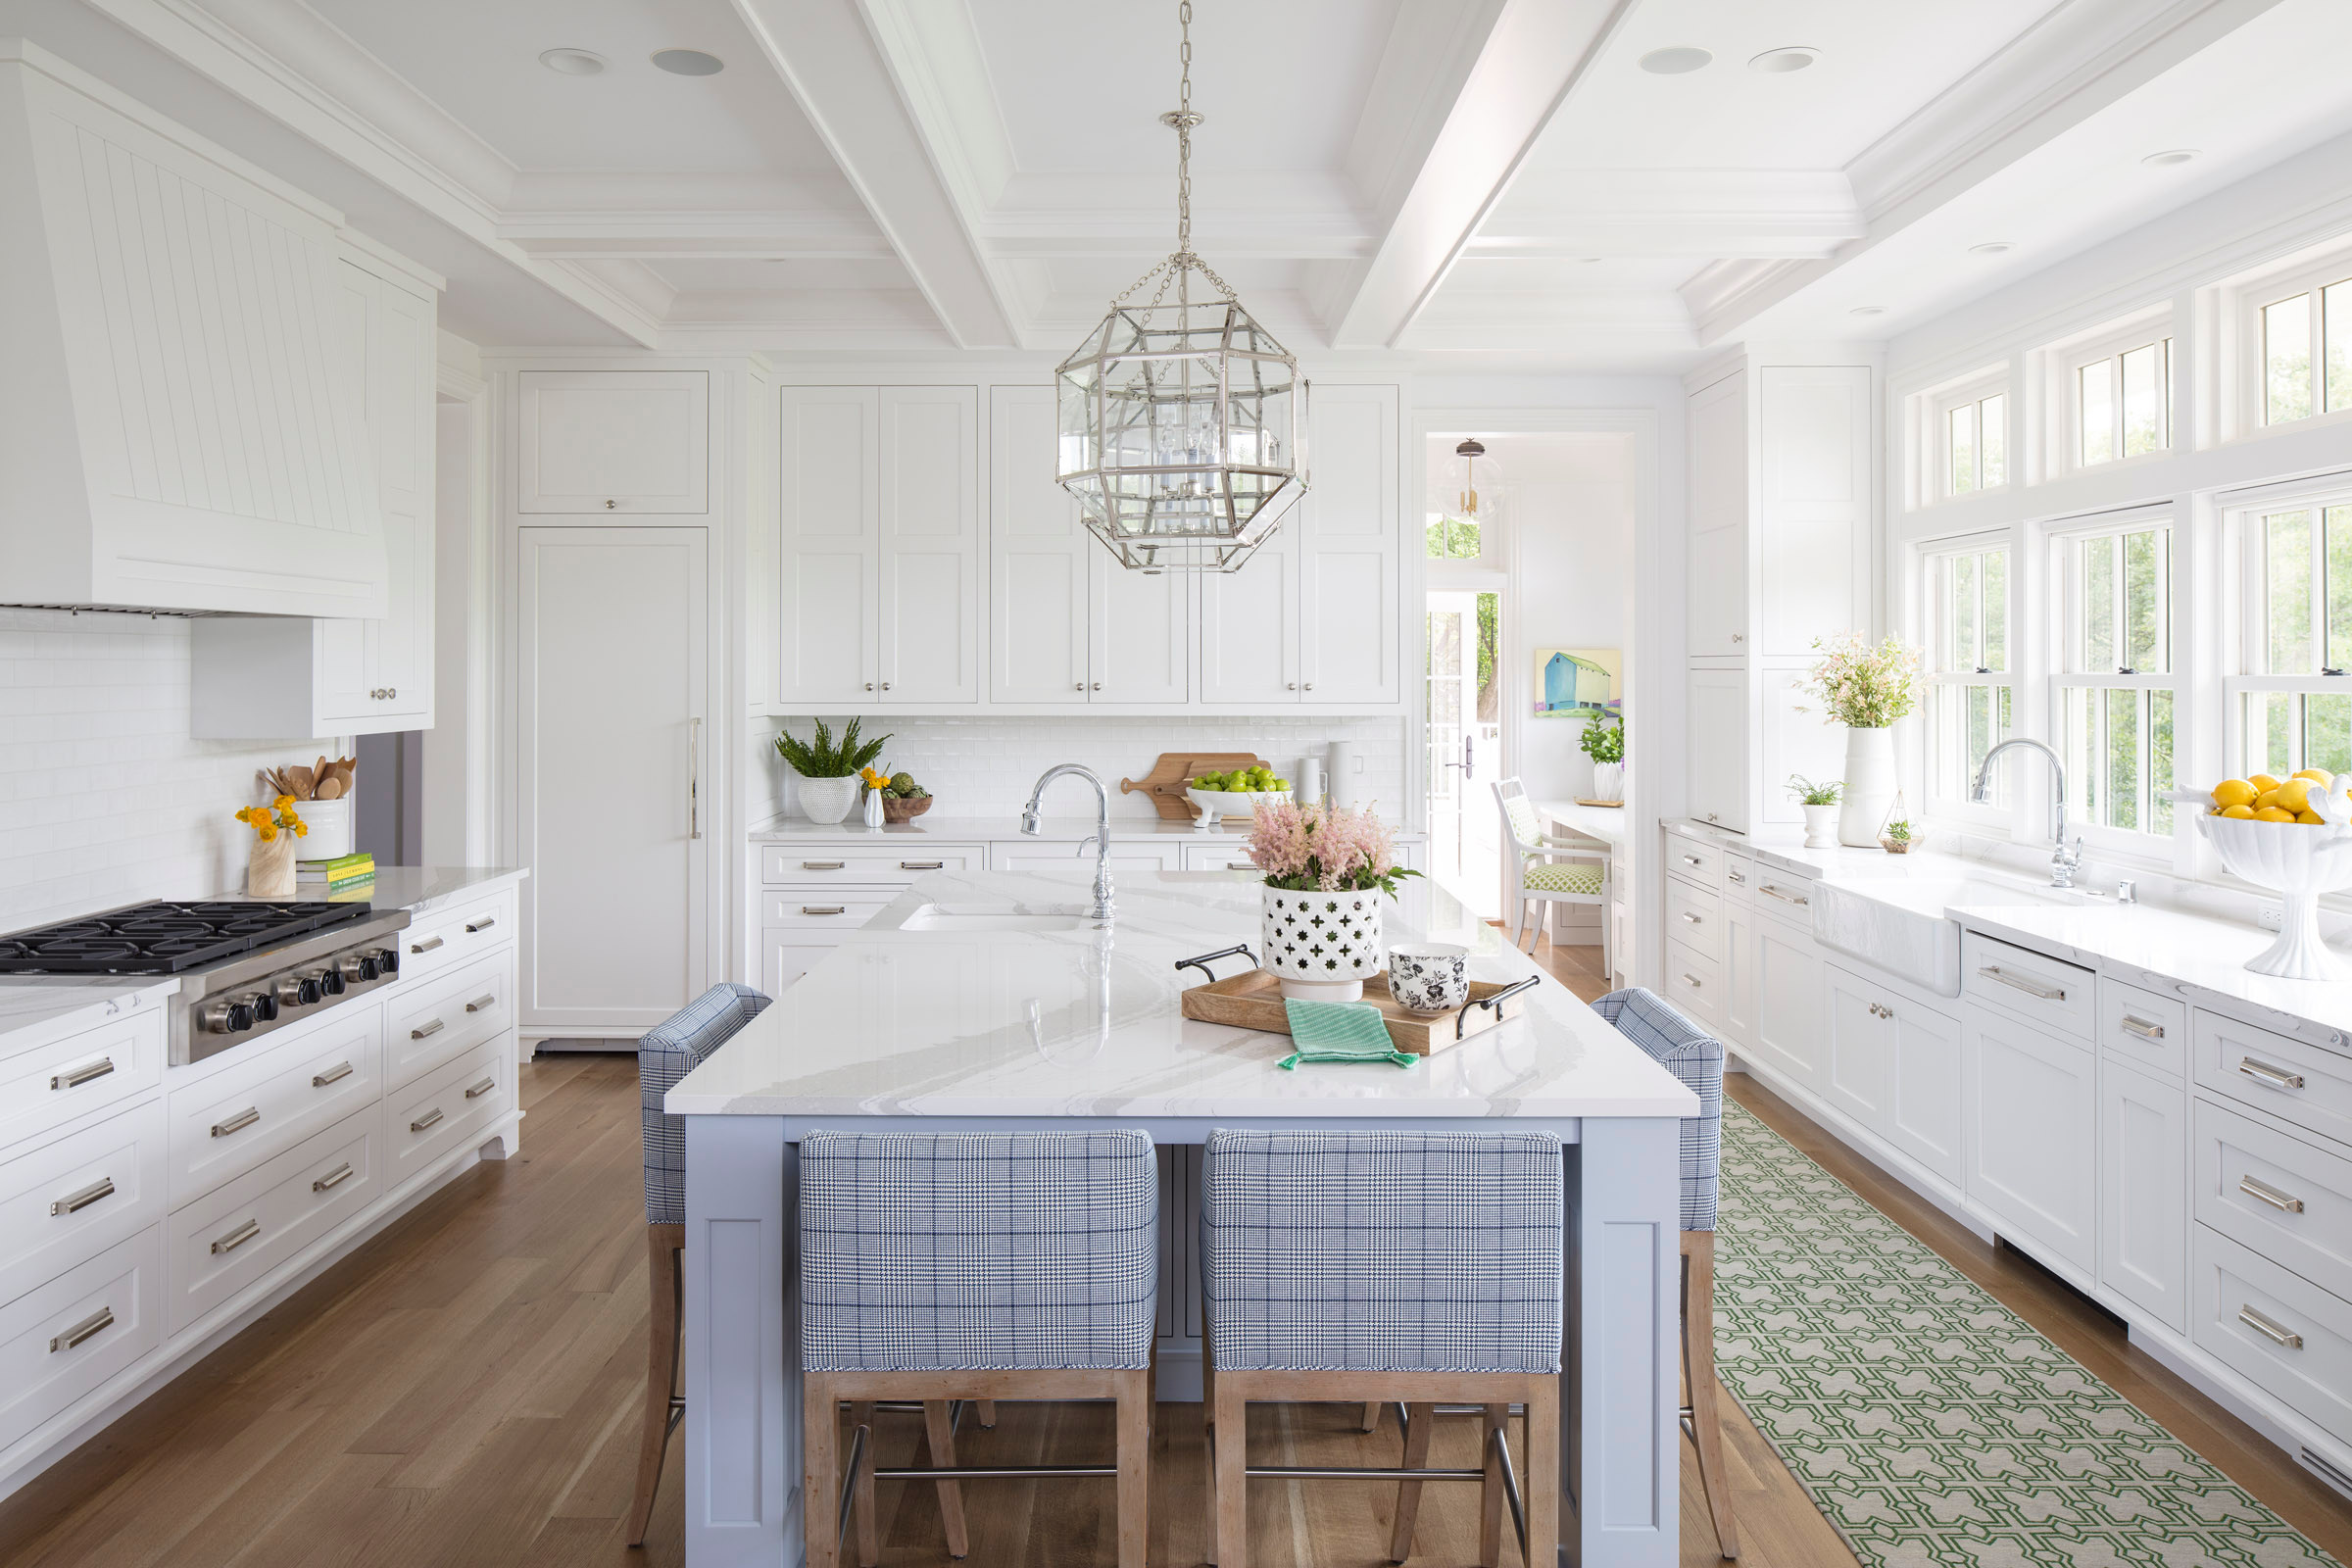 75 Beautiful Coffered Ceiling Kitchen Pictures Ideas January 2021 Houzz